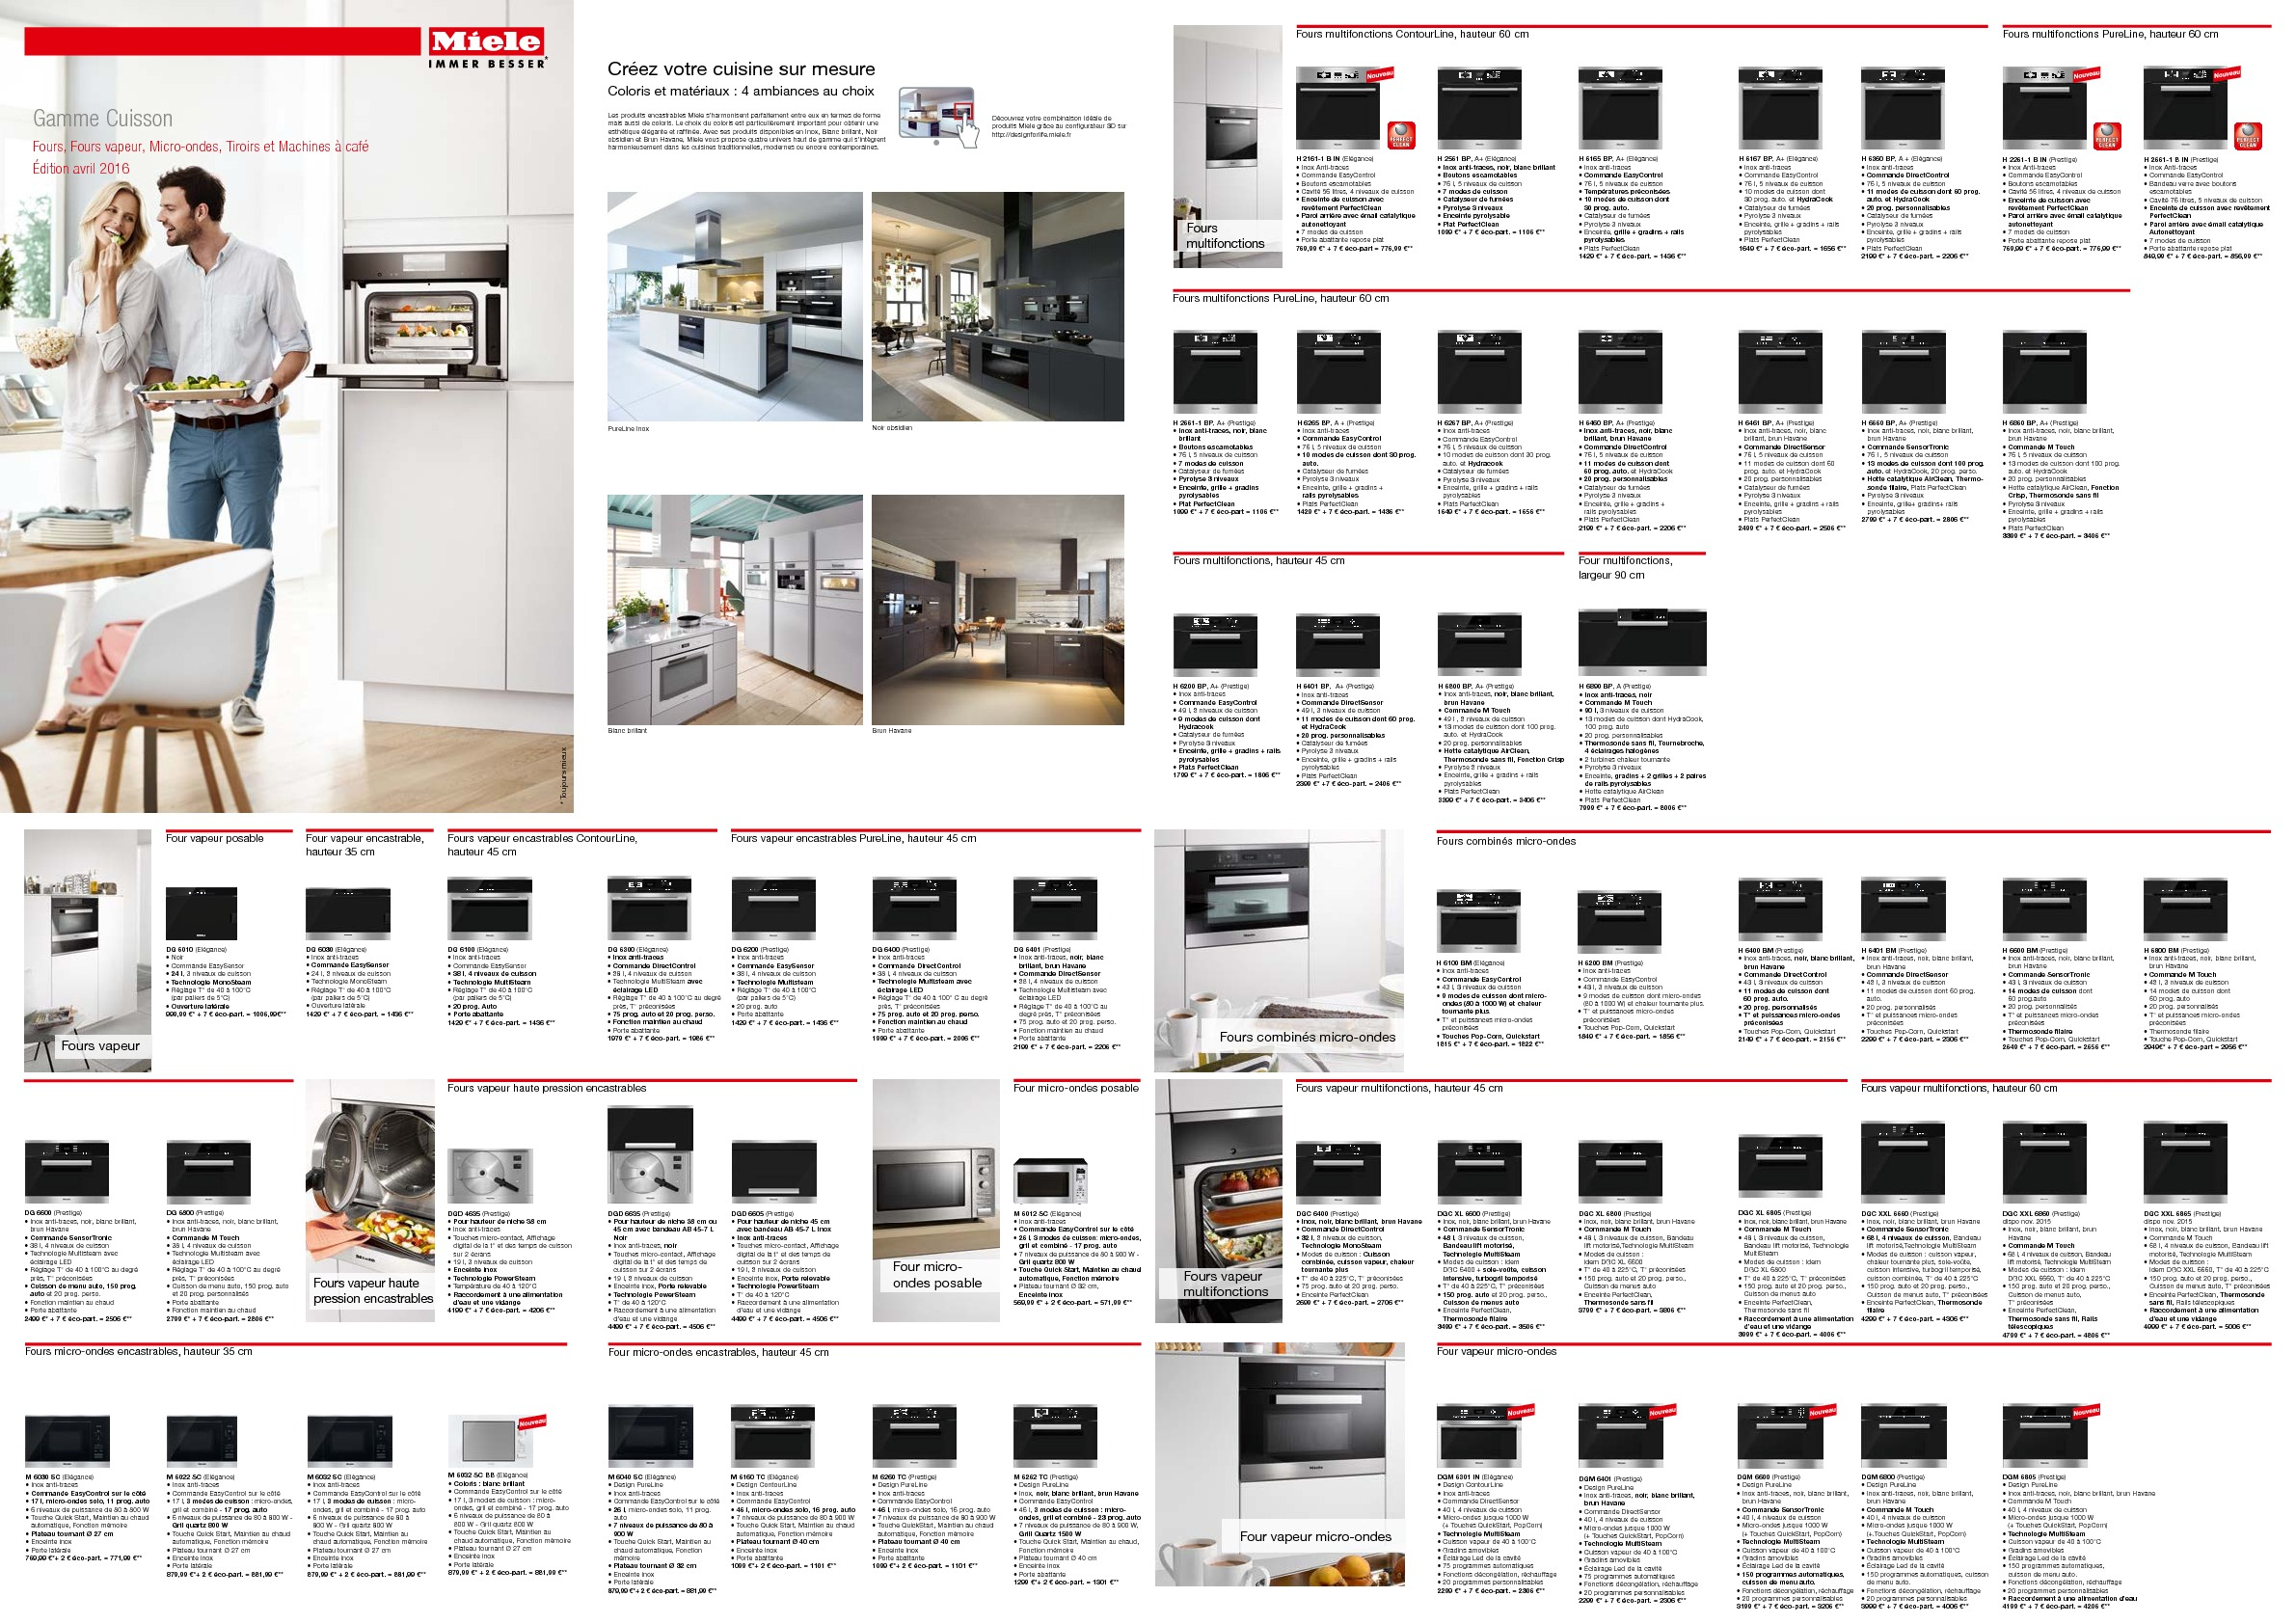 https://www.miele.fr/media/ex/fr/brochures/Poster_gamme_cuisson_avril_2016.pdf